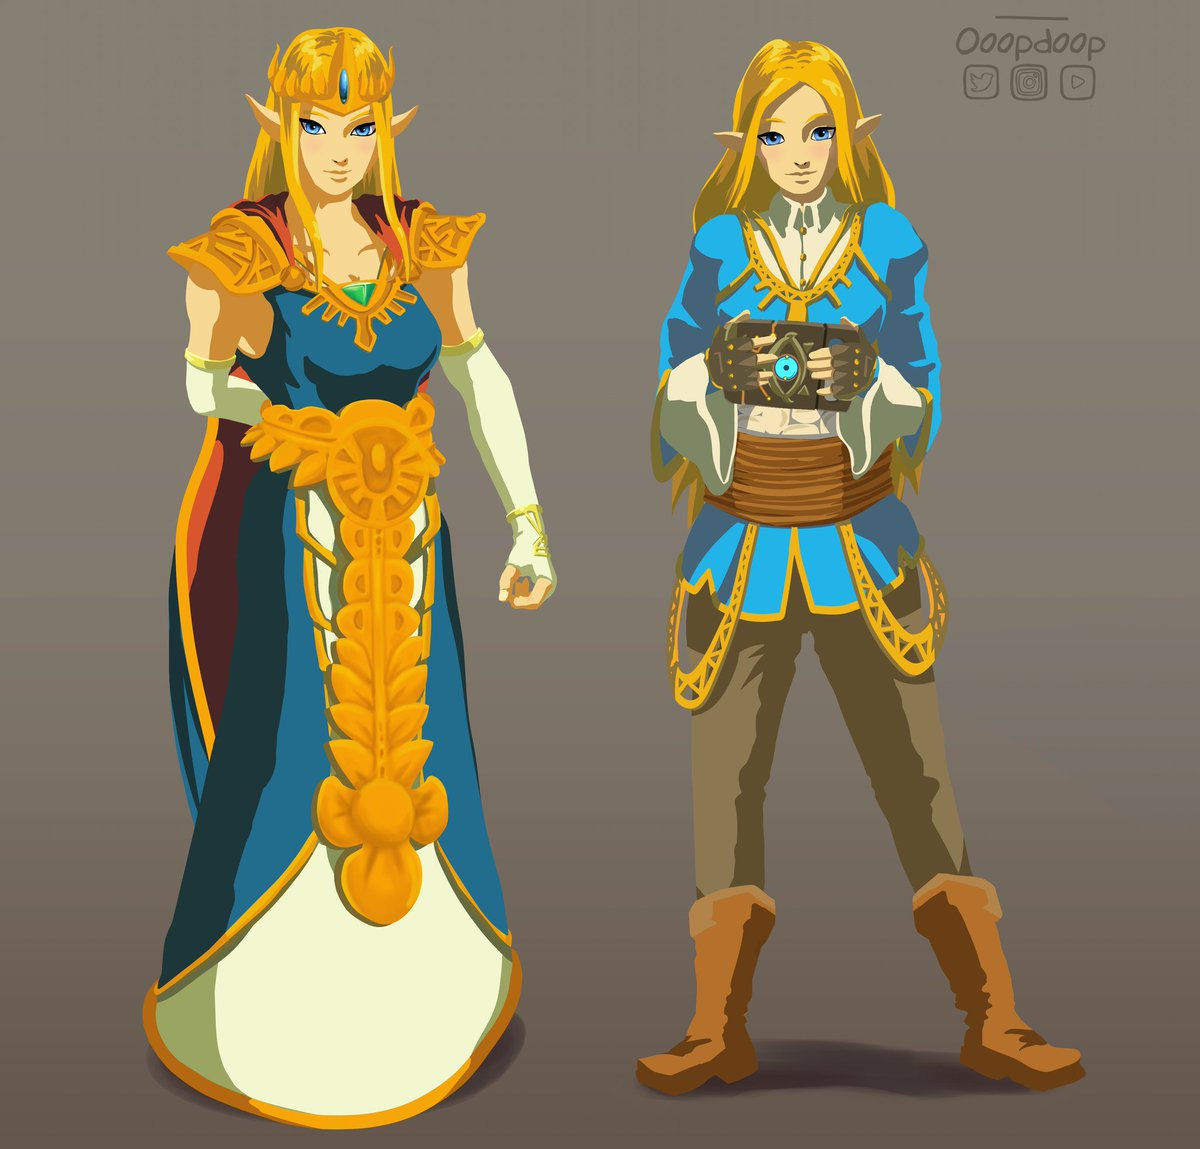 Zelda Character Design Breath Of The Wild : Ookami shi no twitter